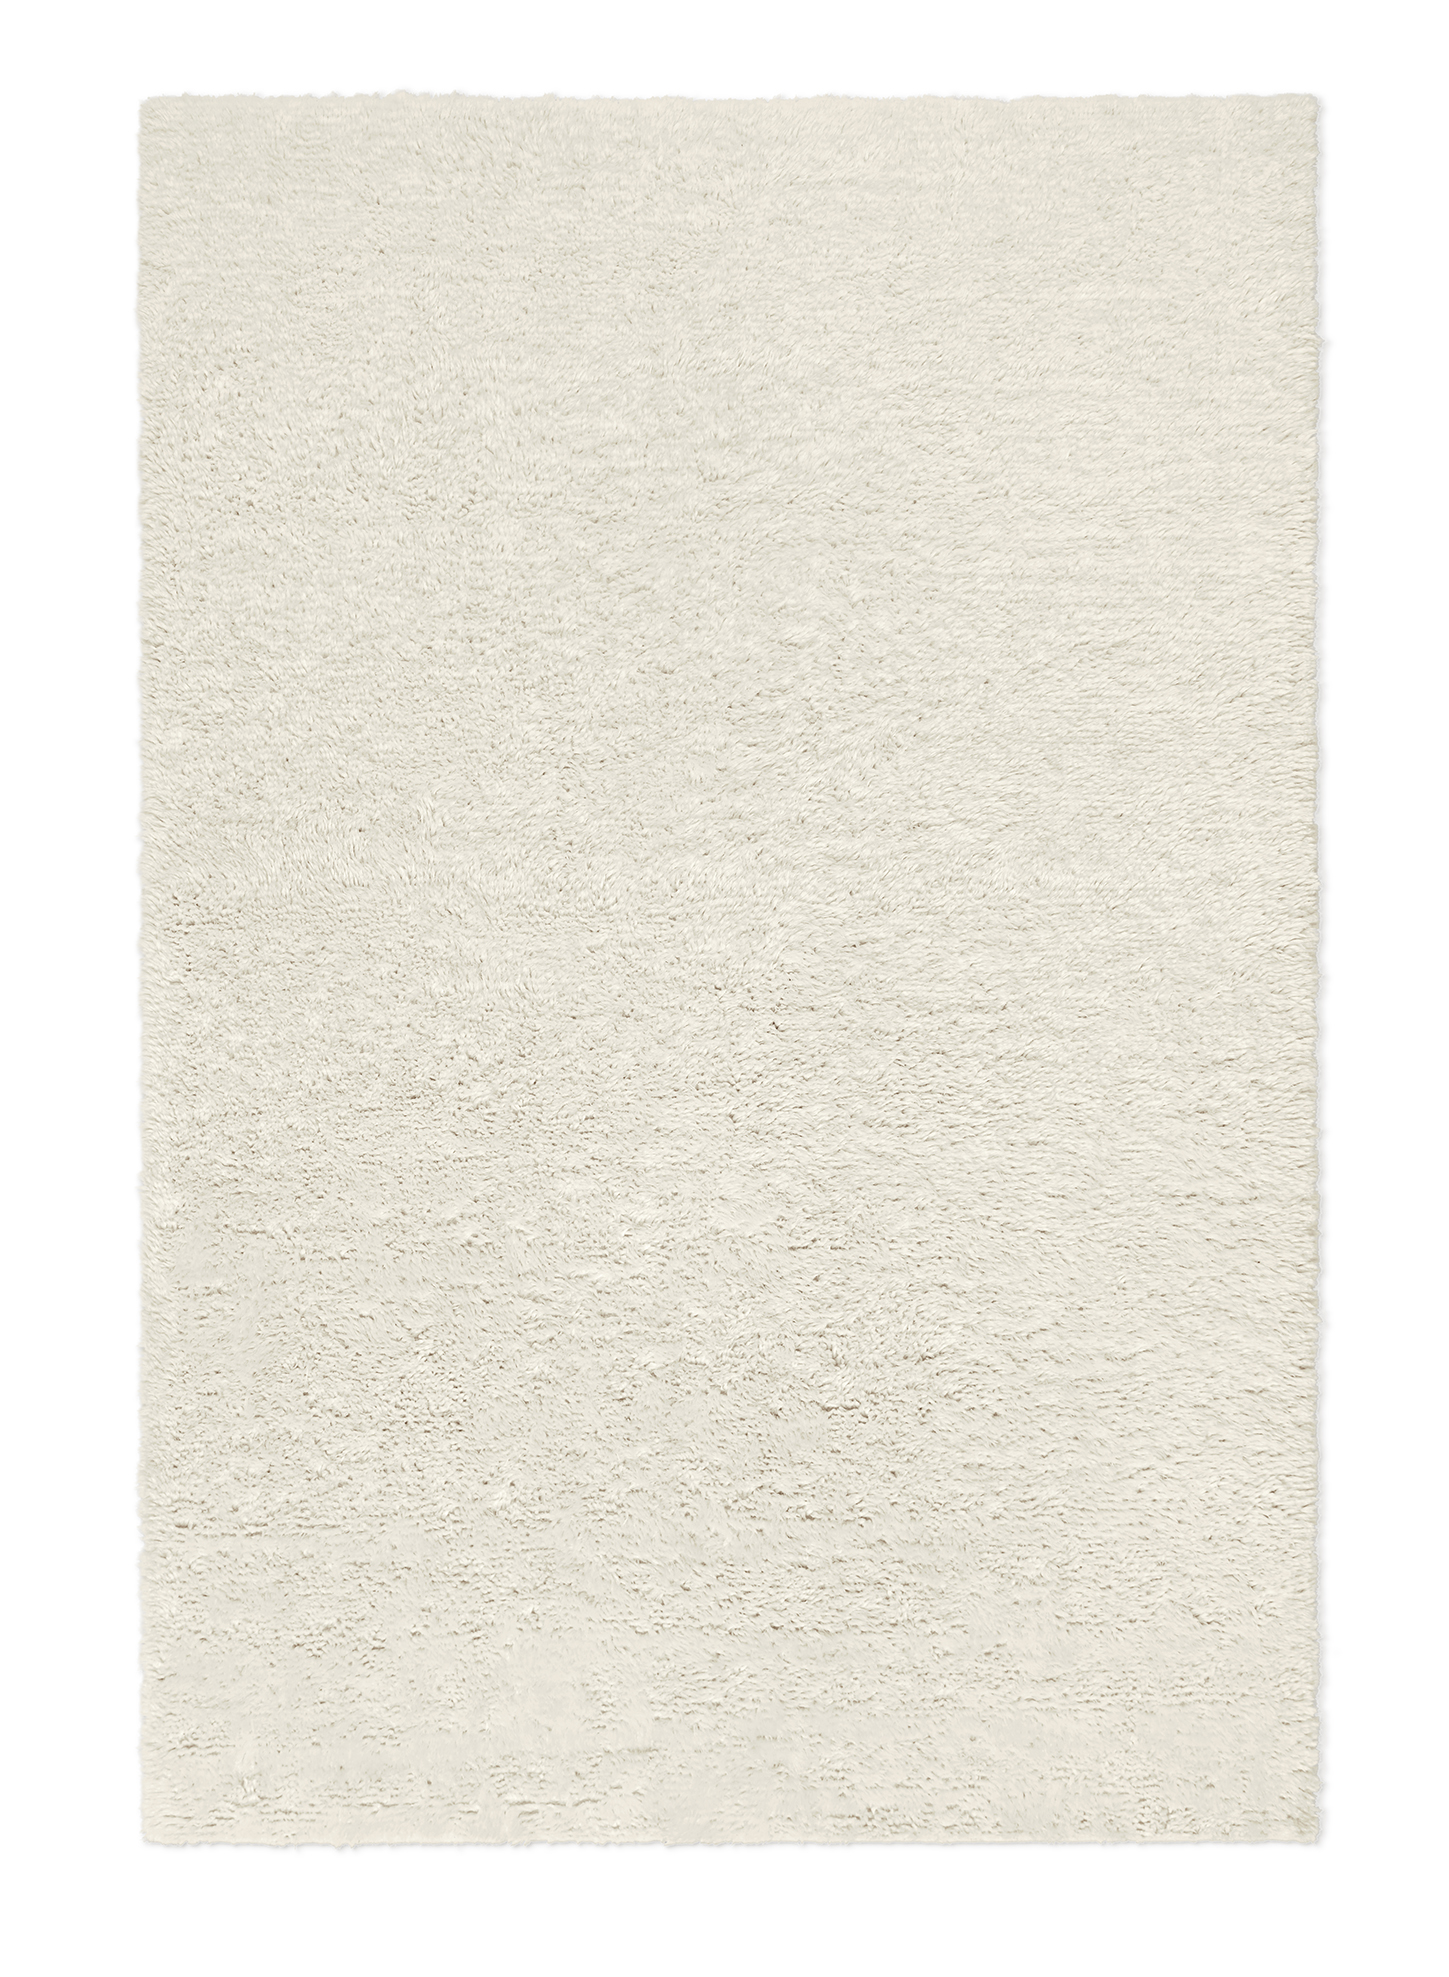 Campaign page.Fields Dusty White wool rug